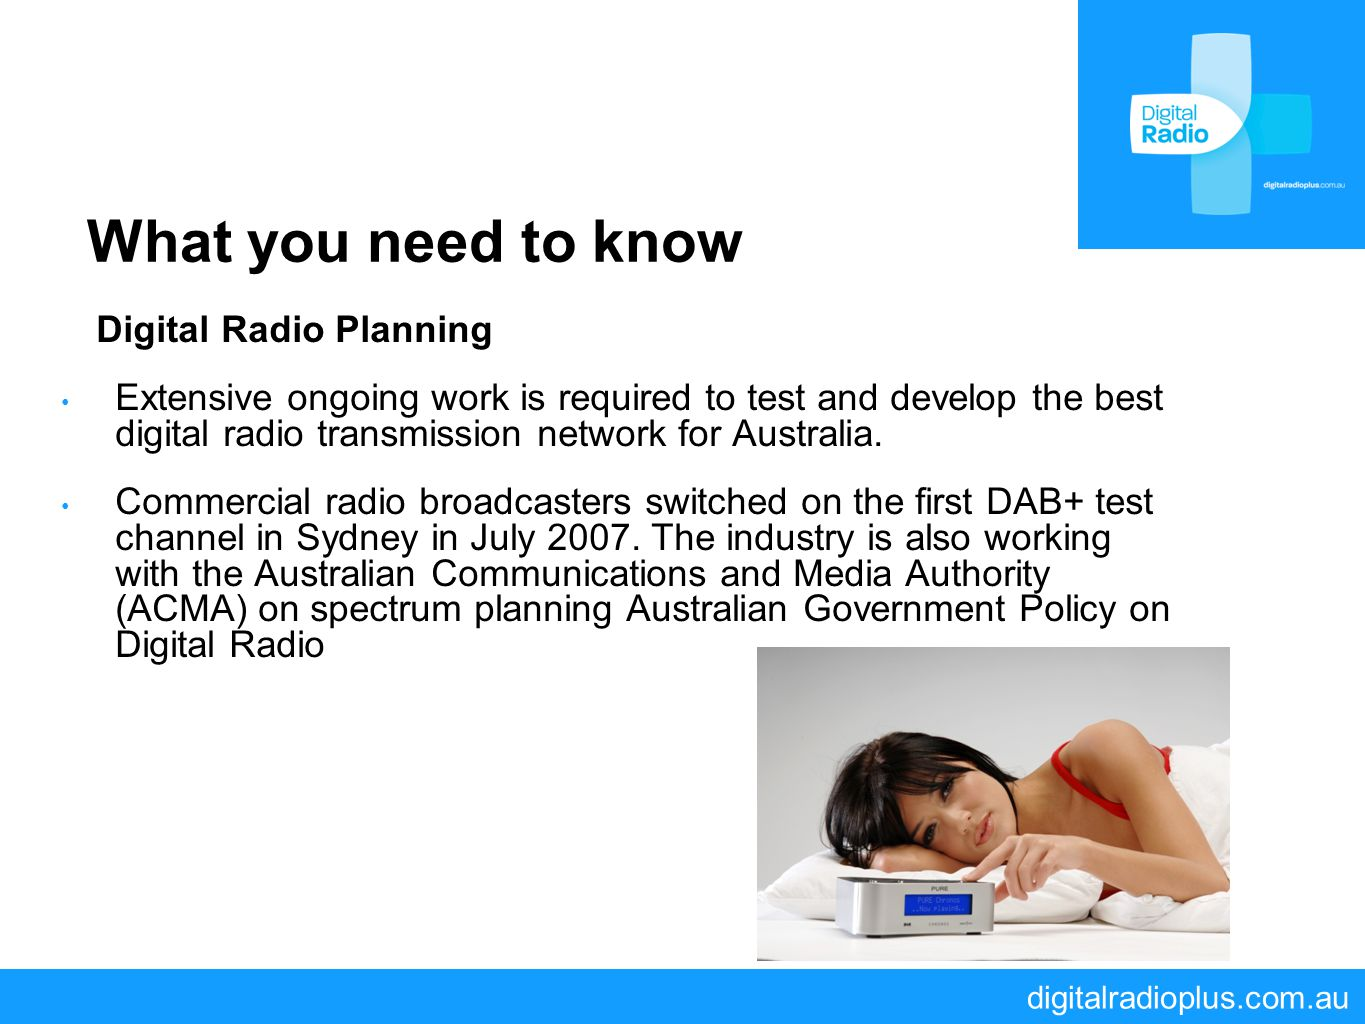 digitalradioplus.com.au What you need to know Digital Radio Planning Extensive ongoing work is required to test and develop the best digital radio tra